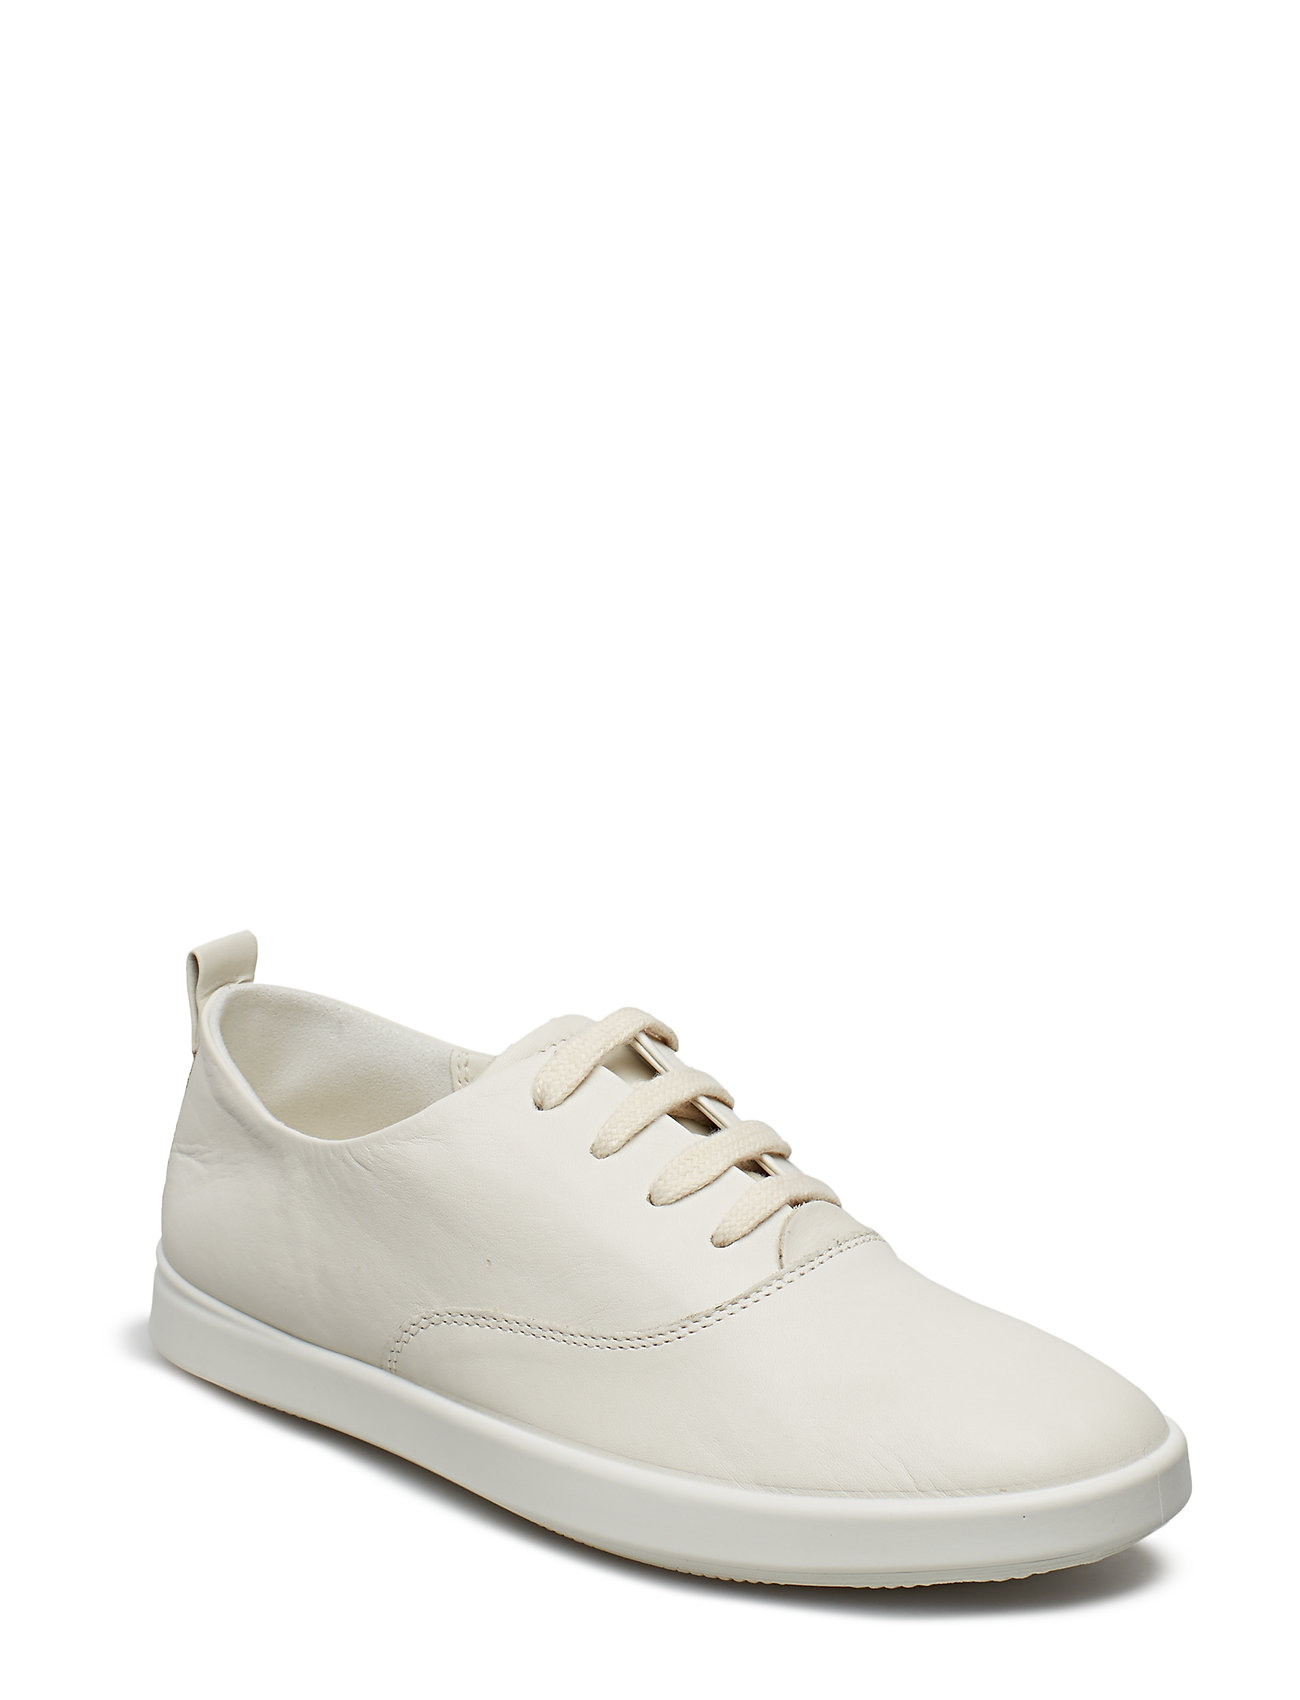 Image of Leisure Low-top Sneakers Hvid ECCO (3341052691)